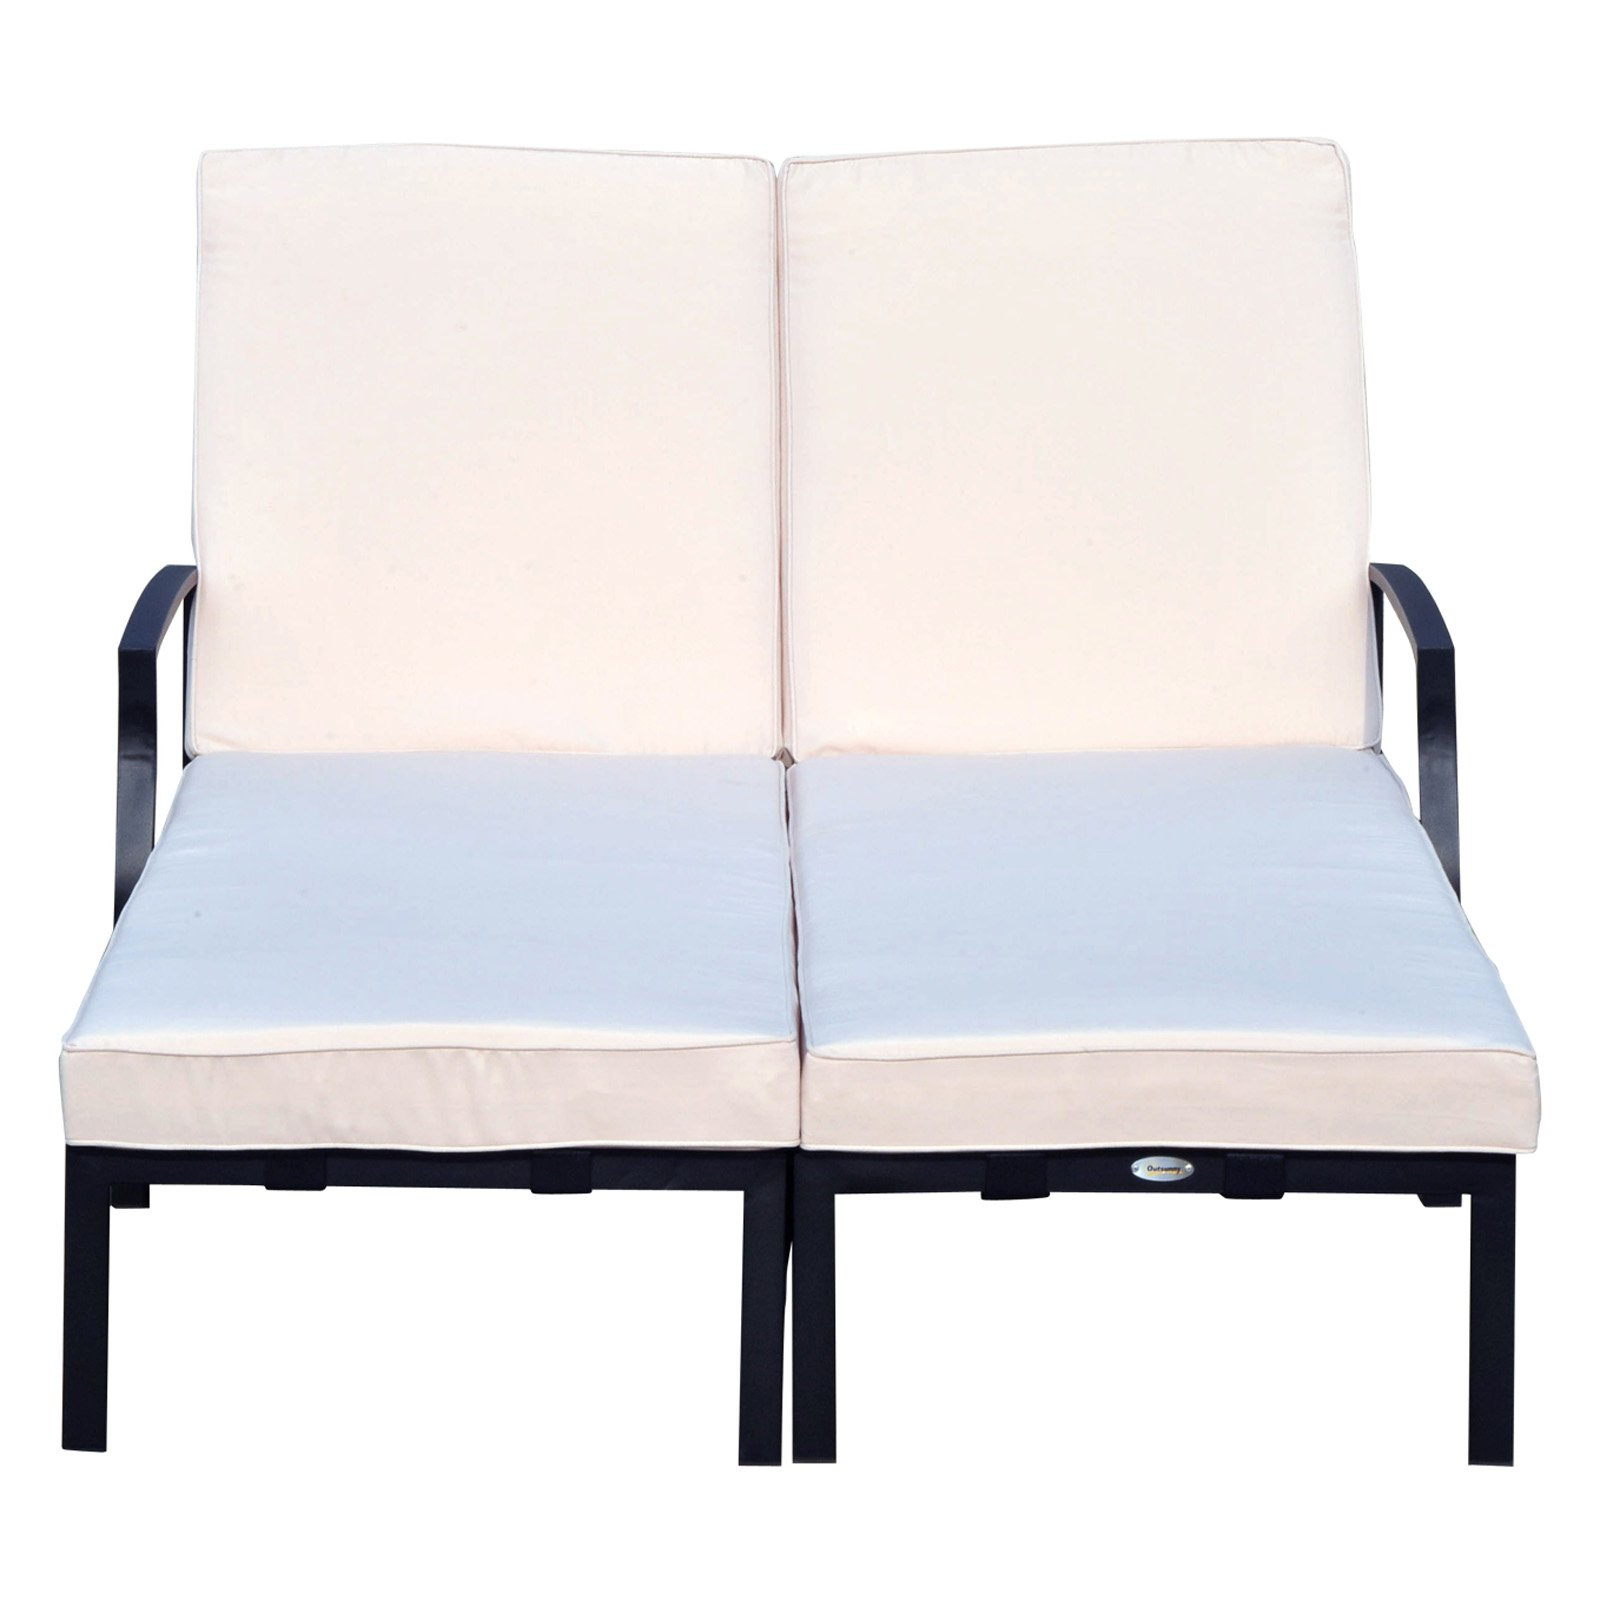 double lounge chair outdoor dining table cushion covers outsunny 74 in reclining walmart com